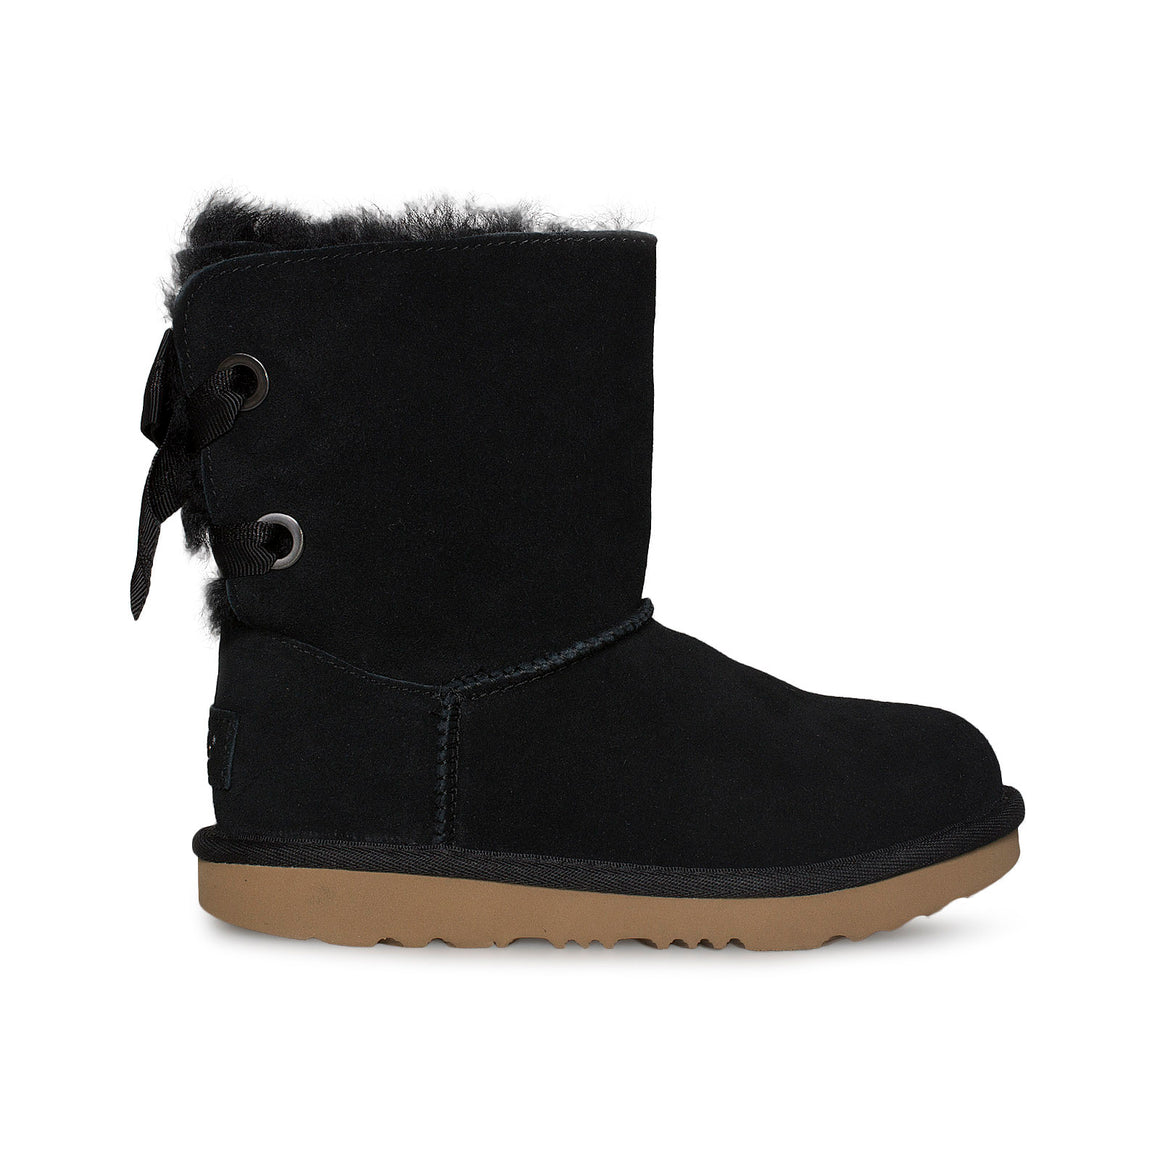 UGG Customizable Bailey Bow ii Black Boots - Toddler / Youth